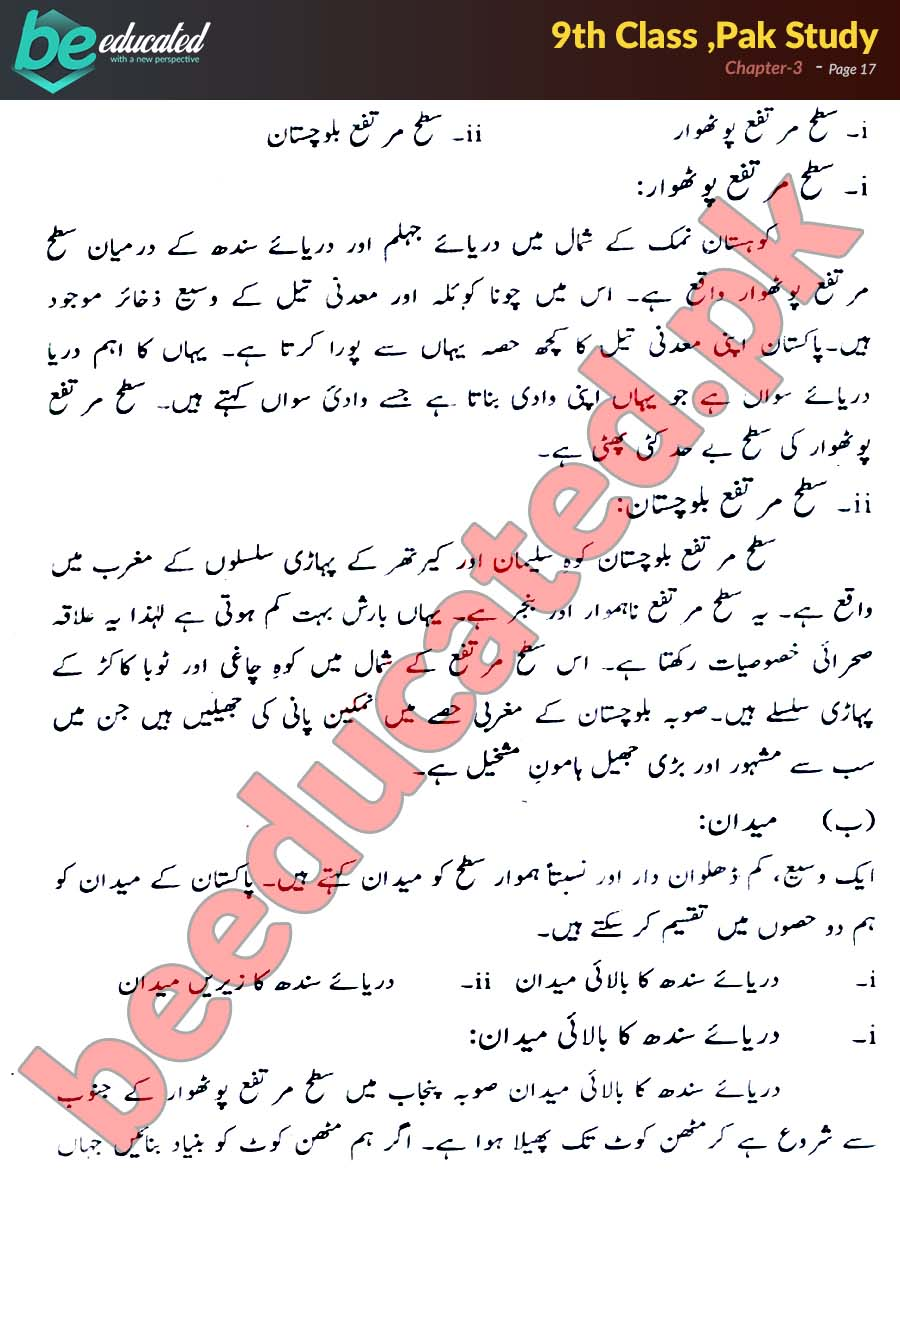 Chapter 3 Pak Studies 9th Class Notes - Matric Part 1 Notes